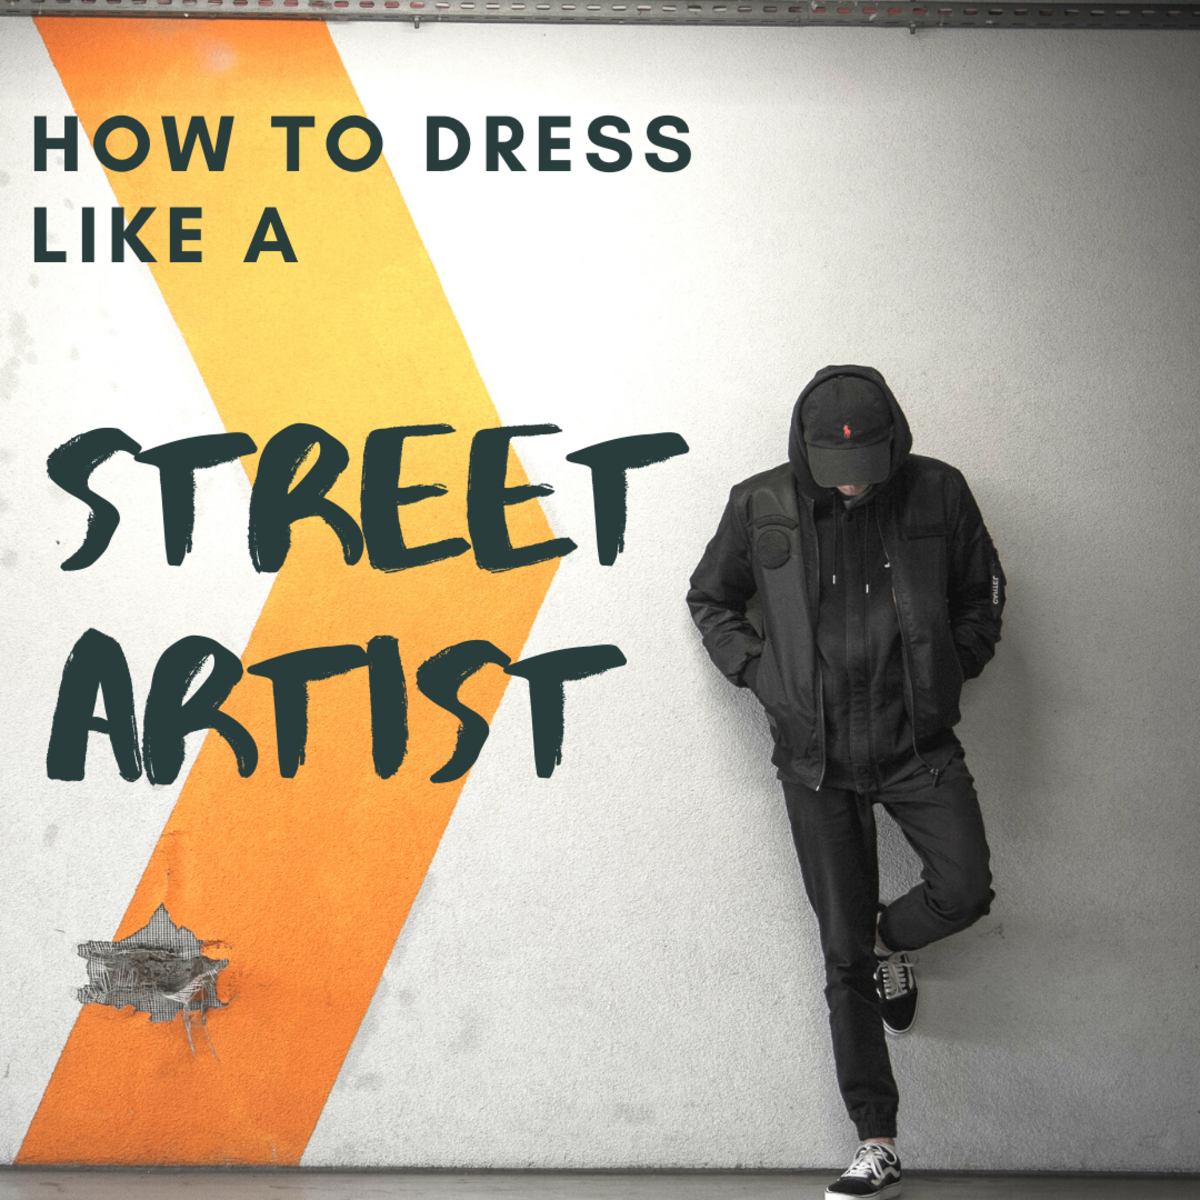 Graffiti Streetwear: How to Dress Like a Street Artist